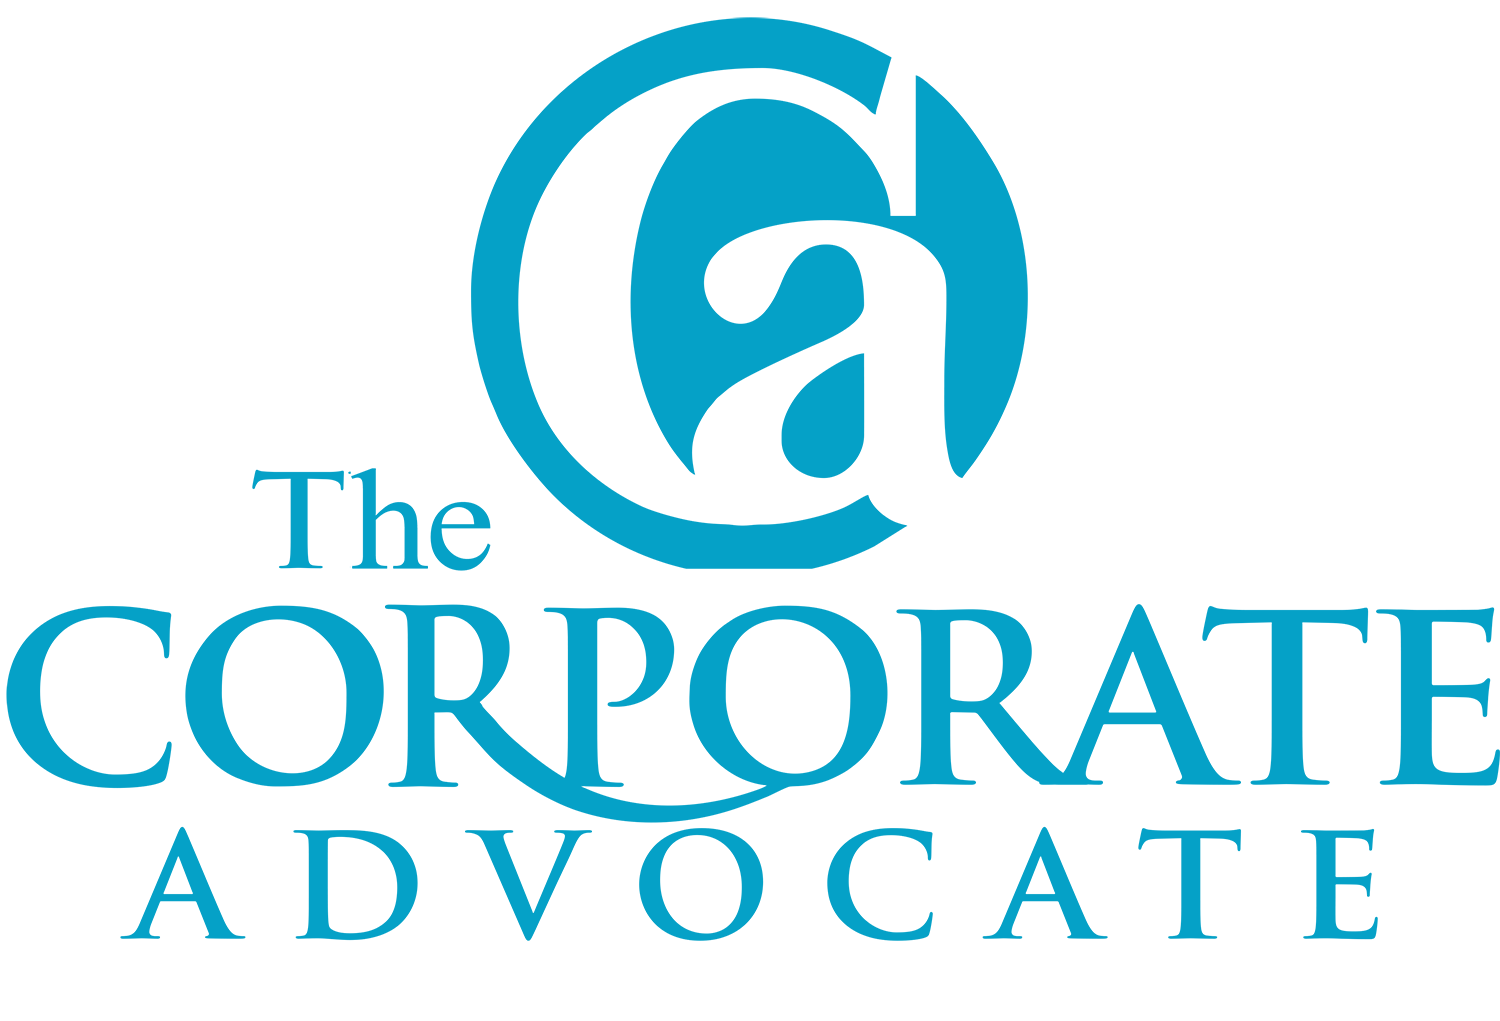 The Corporate Advocate